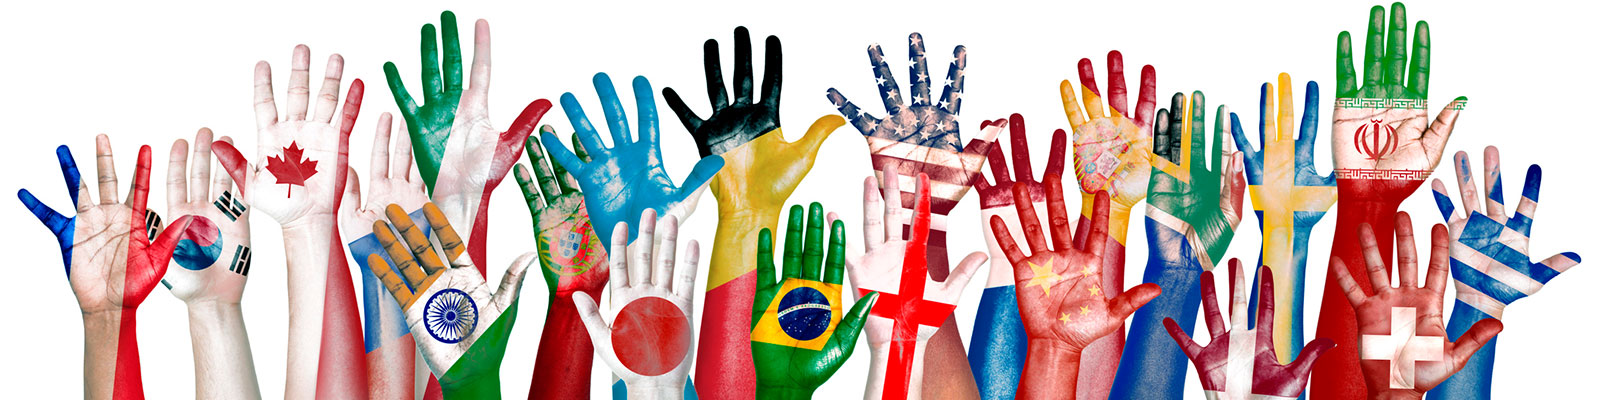 raised hands painted with international flags